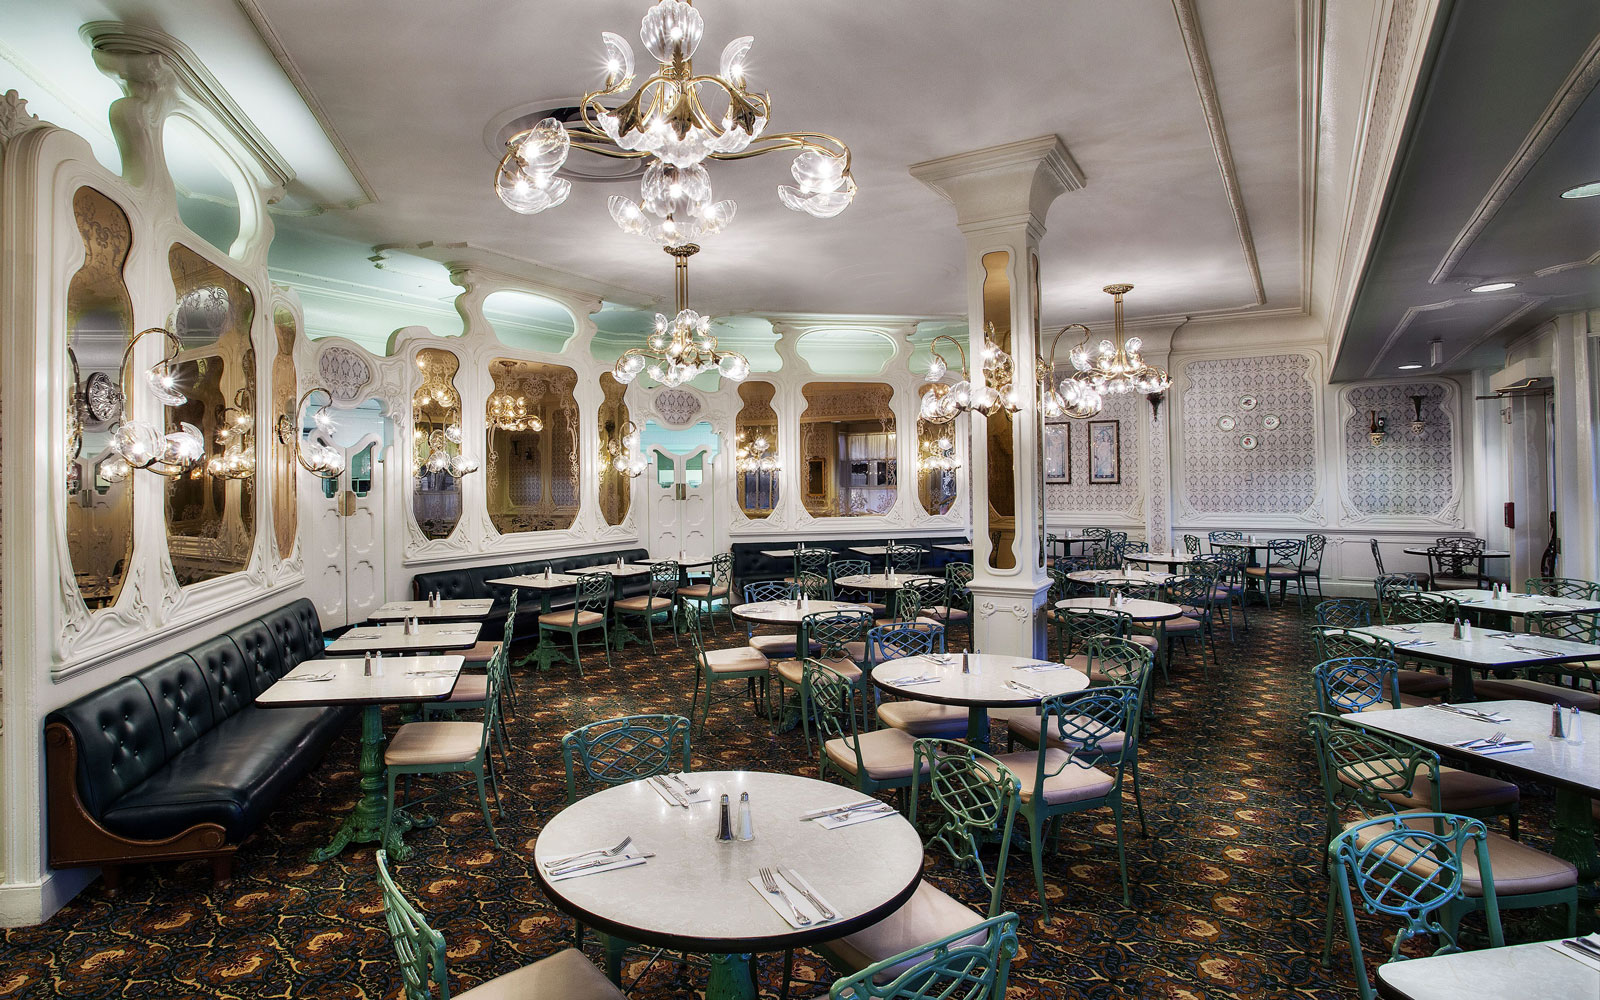 dining room at the Plaza Restaurant at Magic Kingdom, Disney World